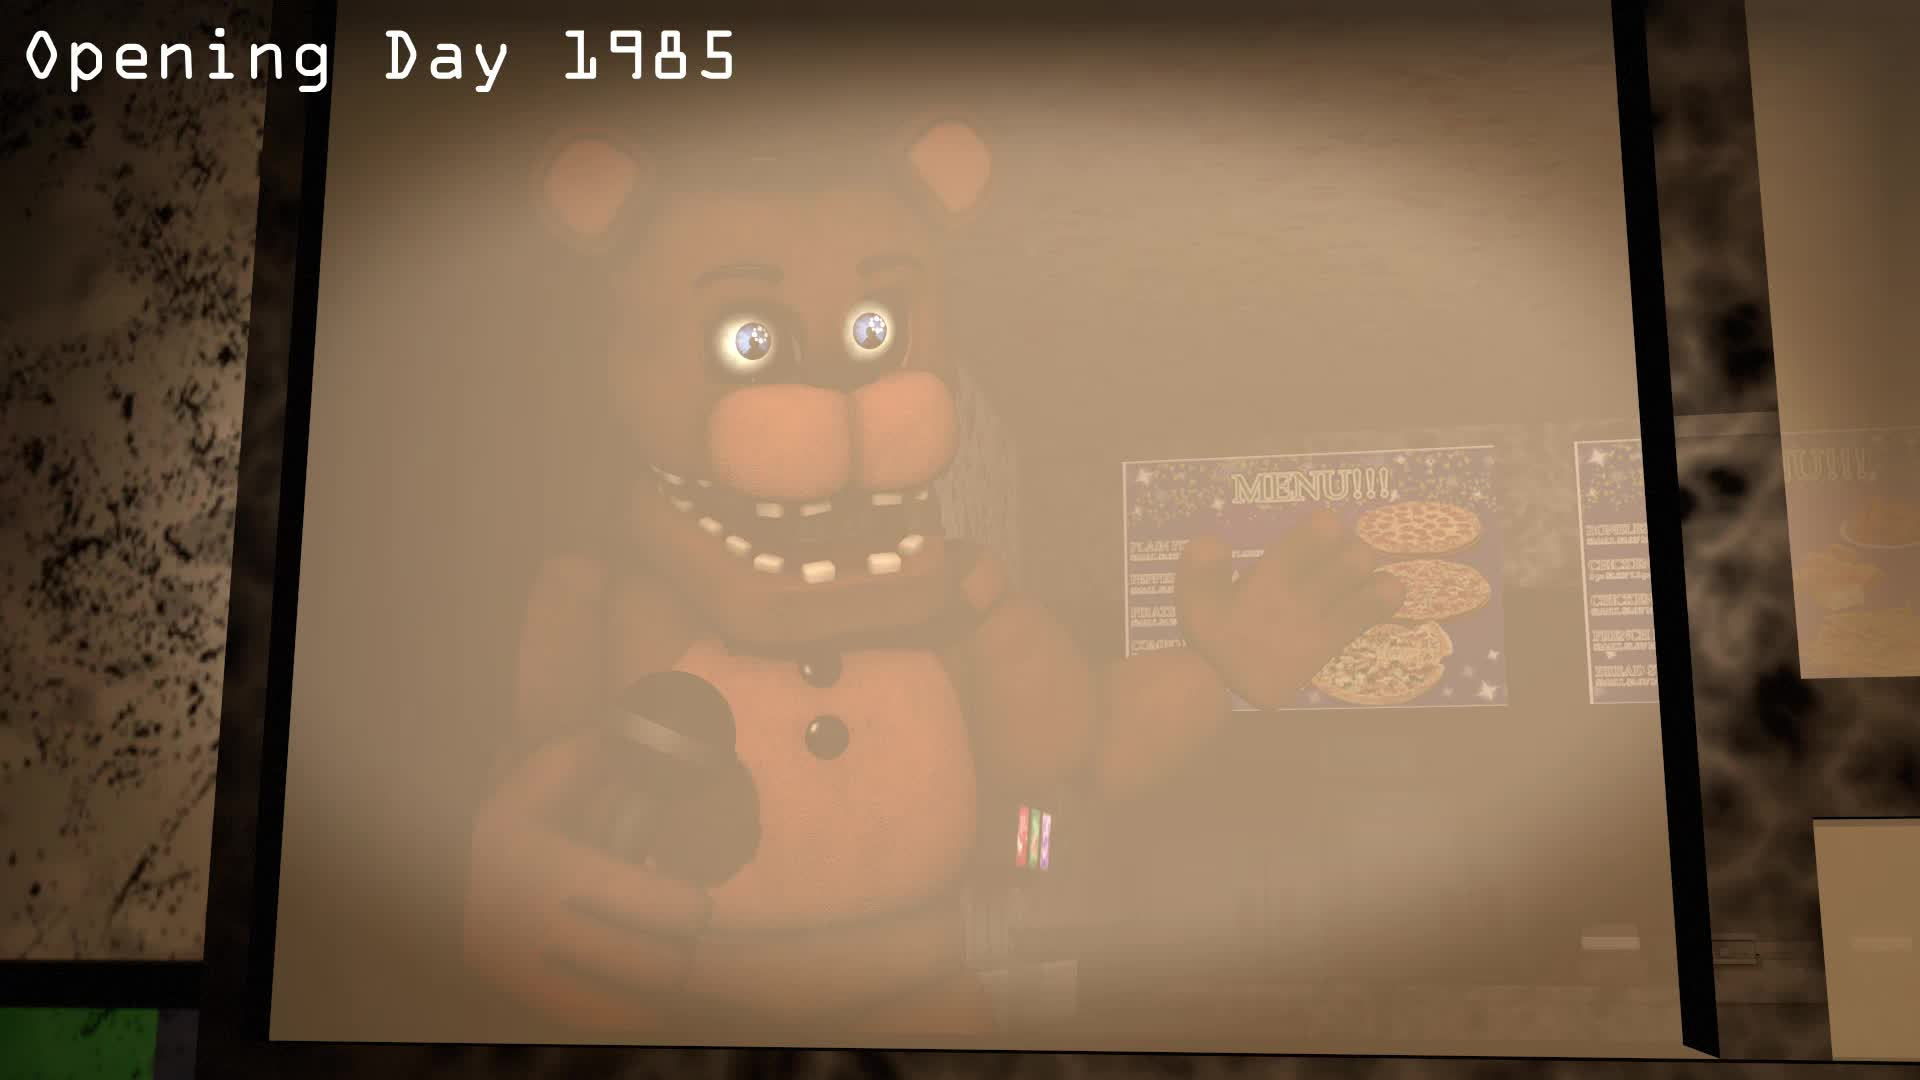 fnaf, fnaf2, freddy, withered freddy, Time Changes Things GIFs